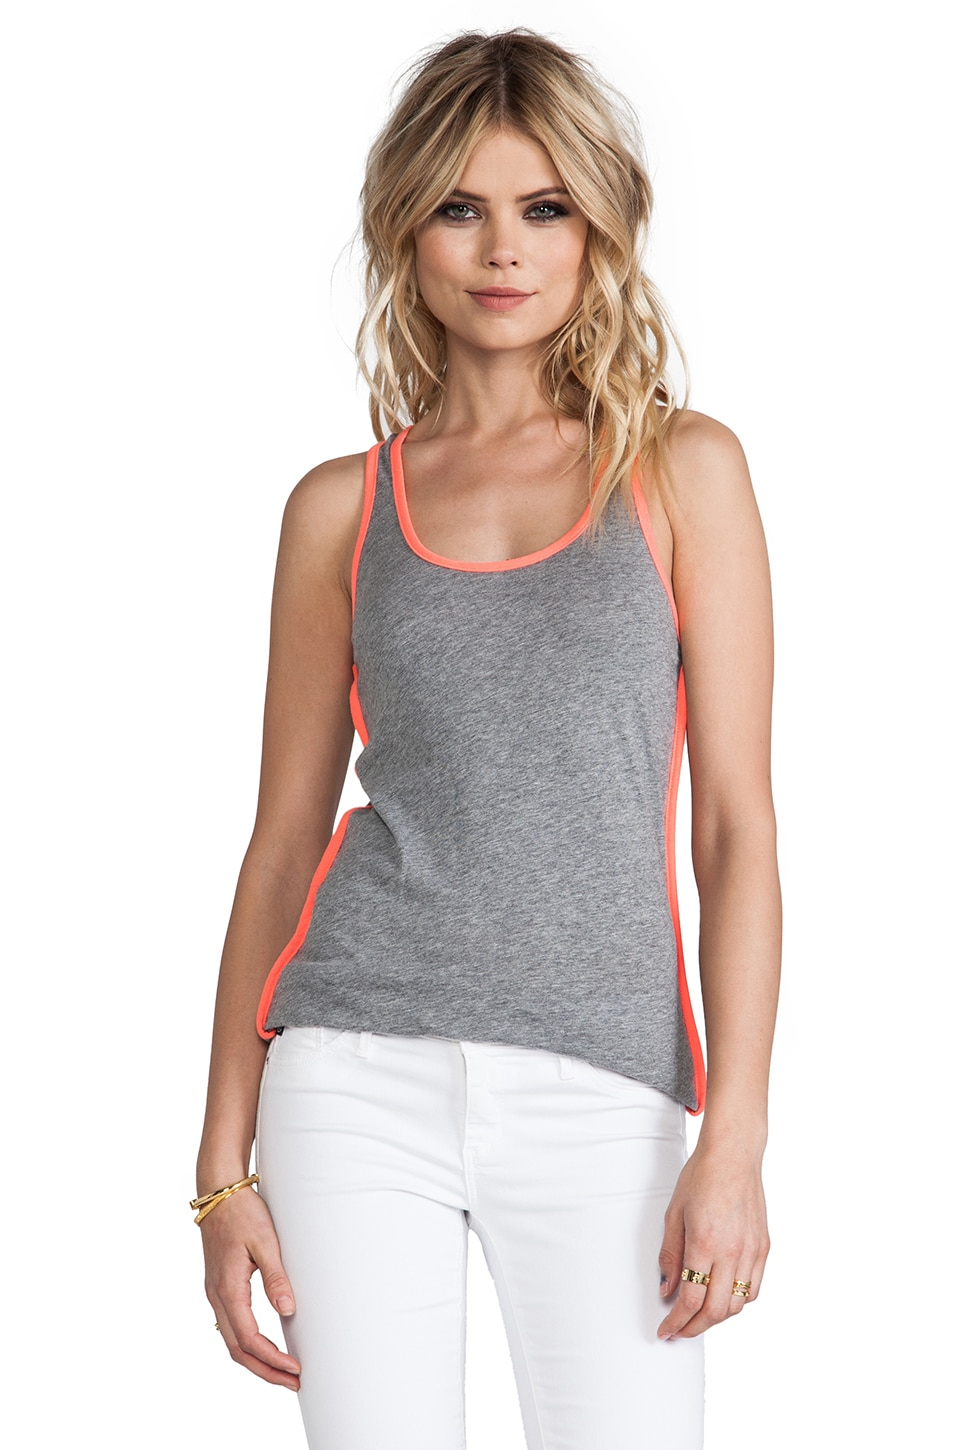 Bobi Light Weight Colorblock Tank in Thunder & Tetra